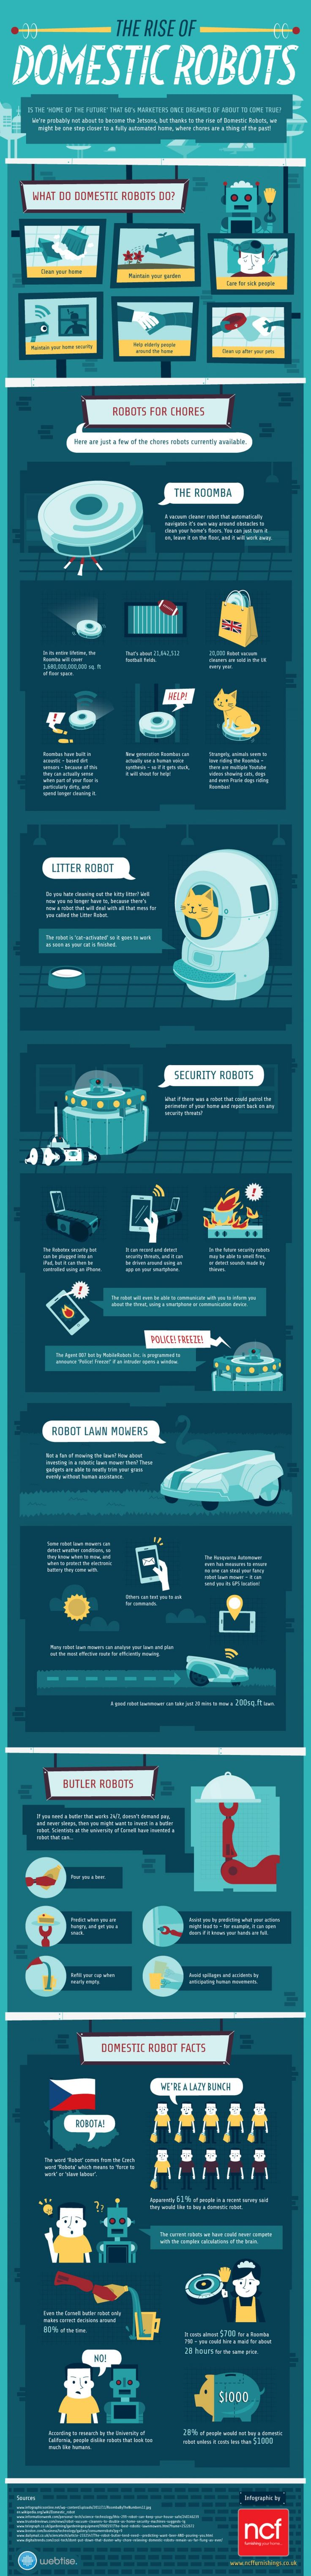 The rise of domestic robots. (More design inspiration at www.aldenchong.com) #infographic